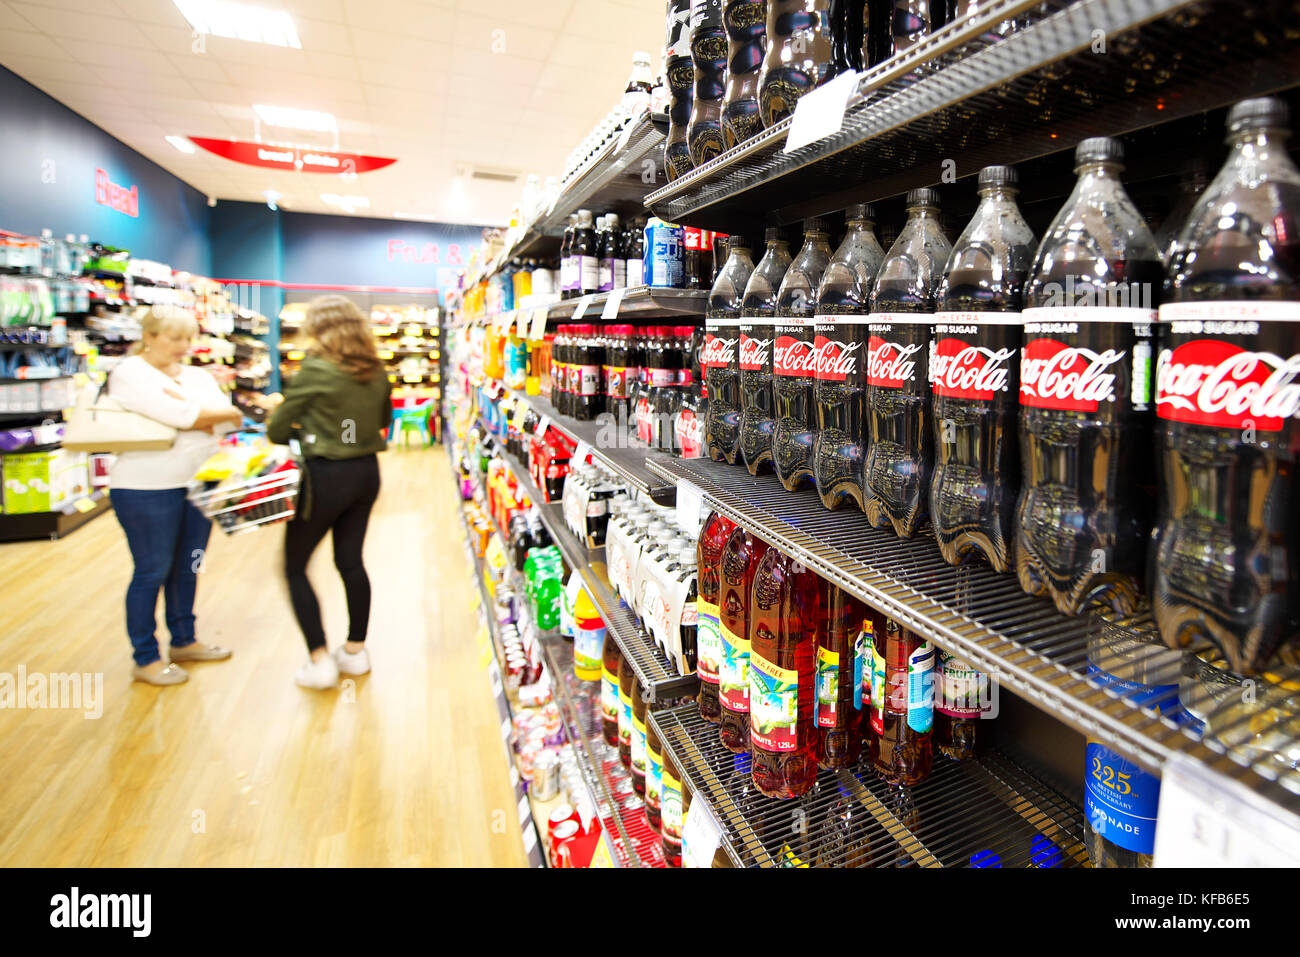 shelves-full-of-fat-fizzy-and-zero-sugar